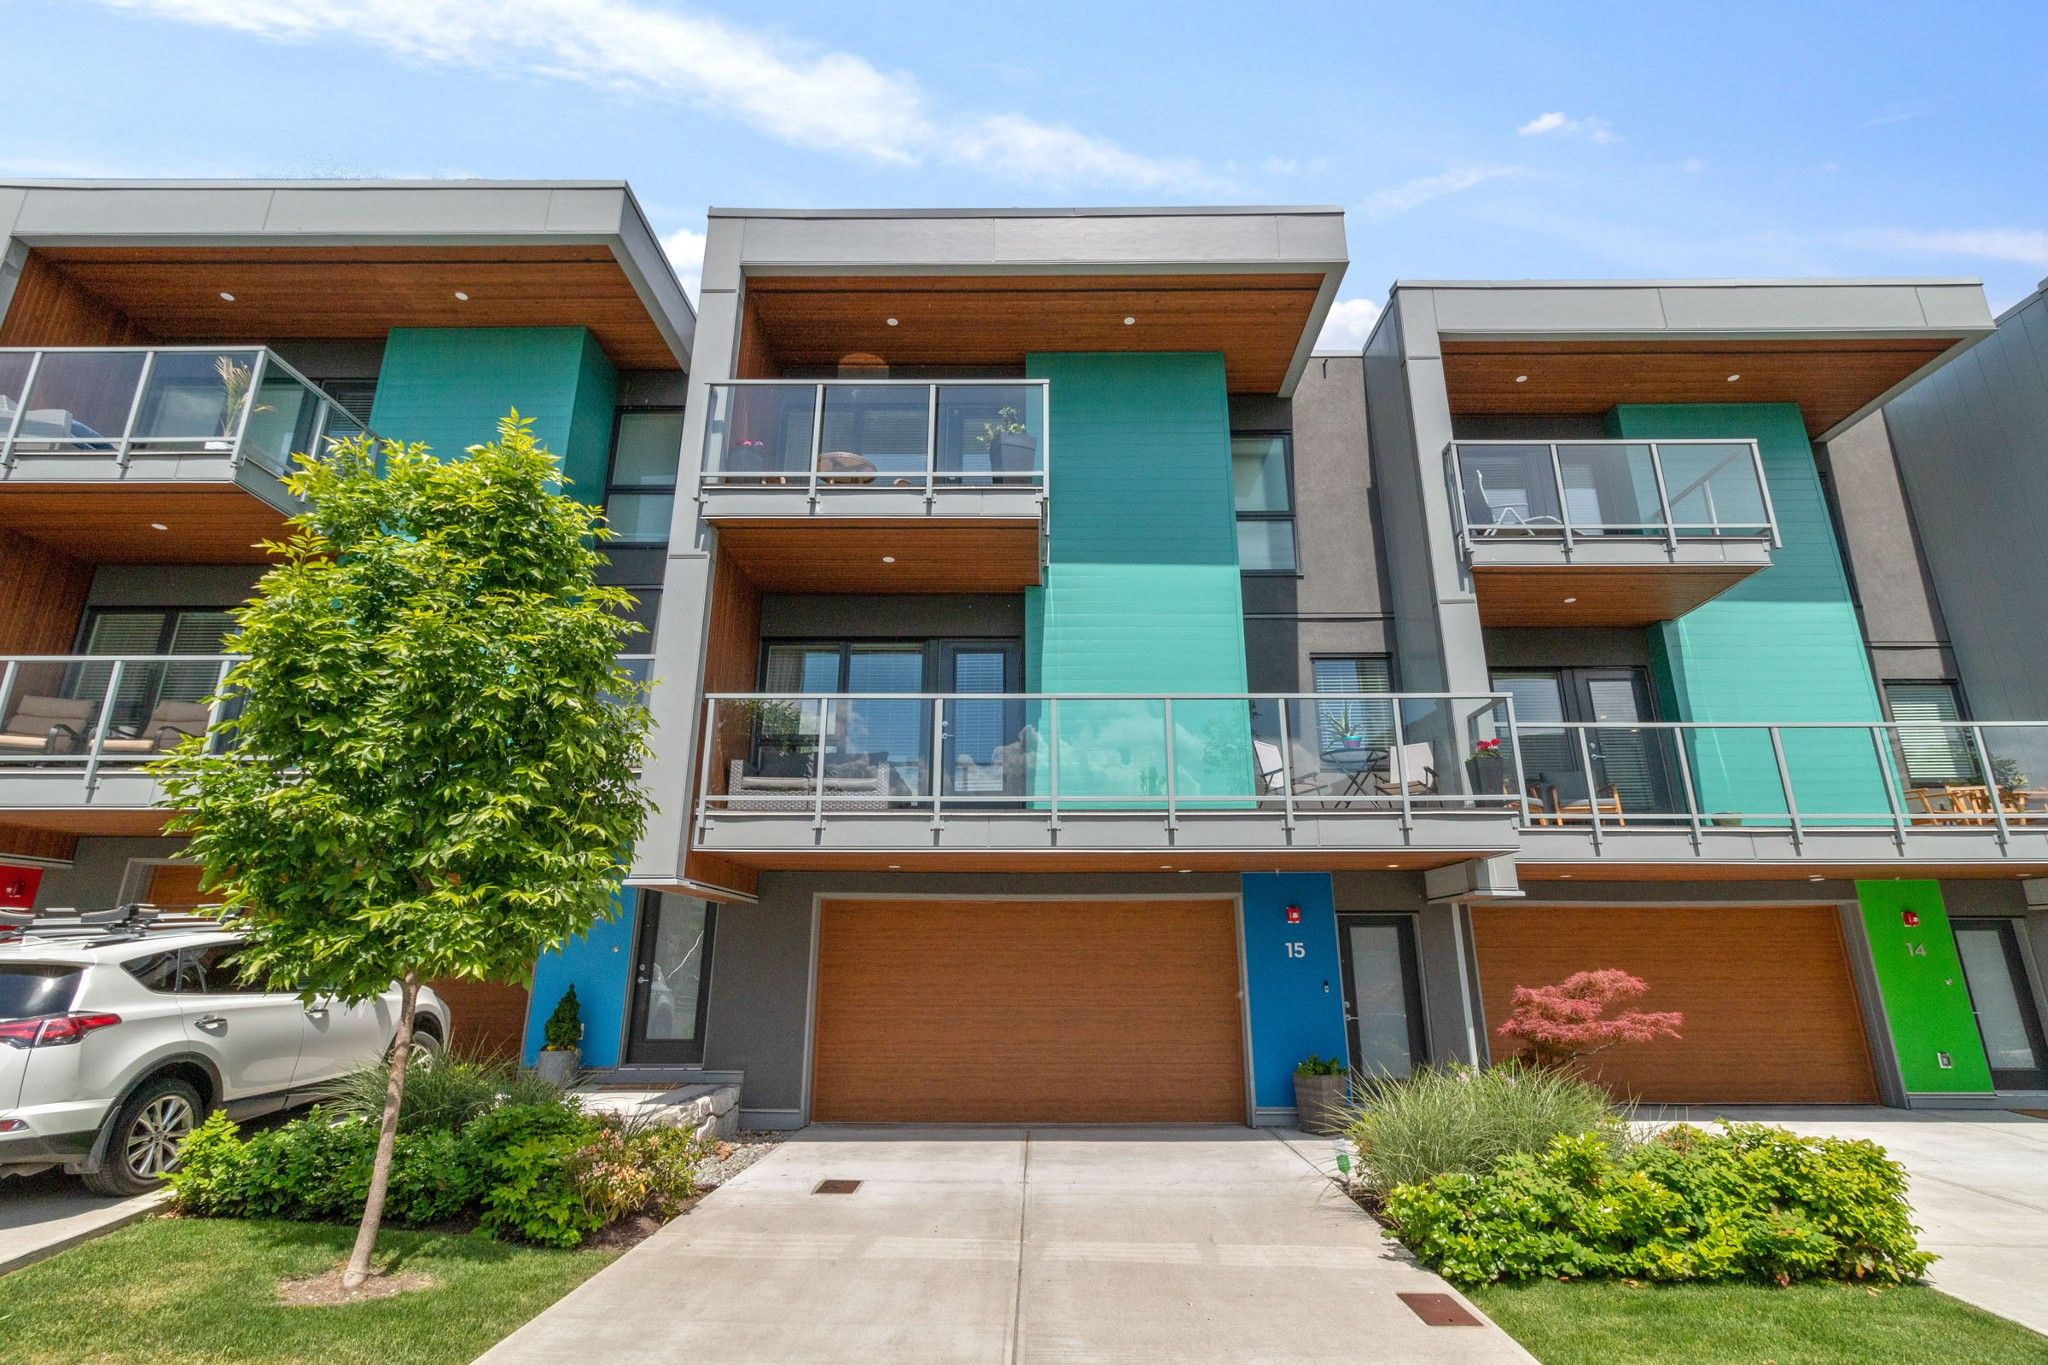 """Main Photo: 15 3596 SALAL Drive in North Vancouver: Roche Point Townhouse for sale in """"SEYMOUR VILLAGE PHASE 2"""" : MLS®# R2582925"""